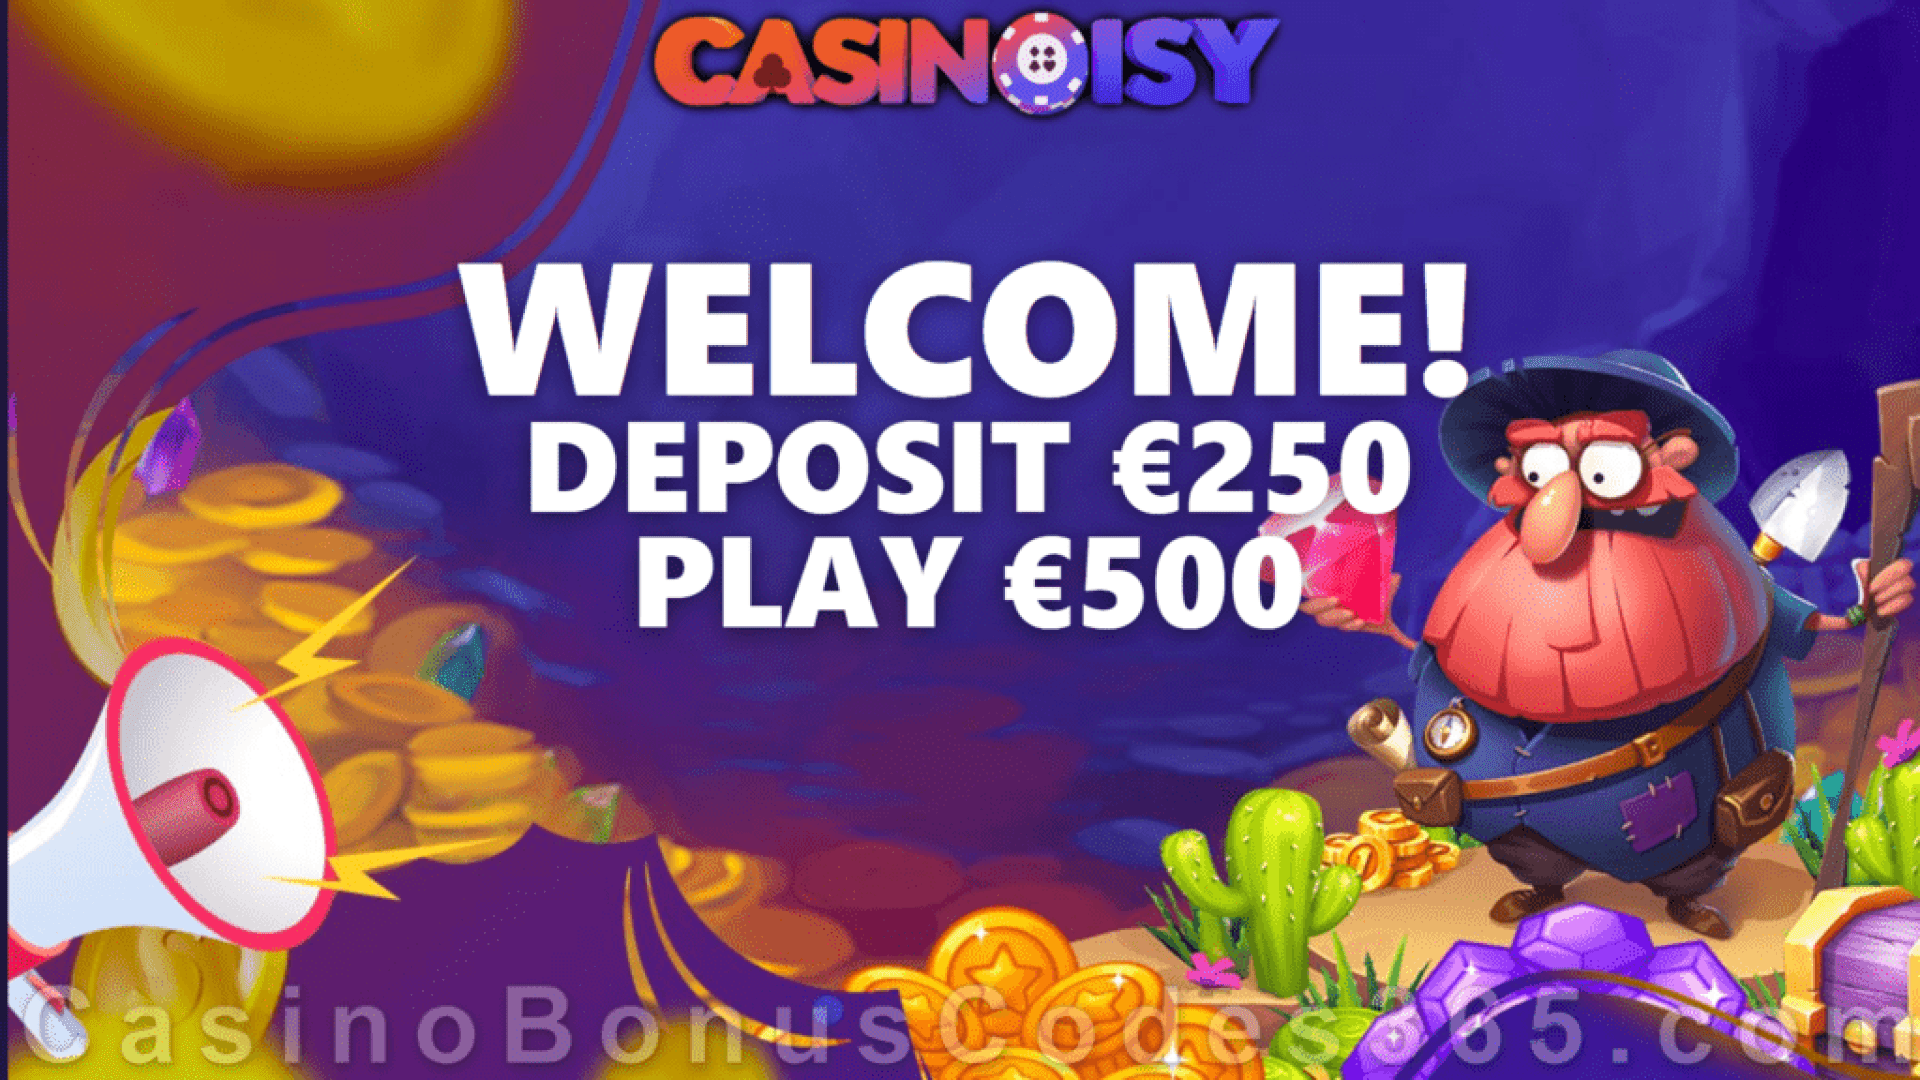 Casinoisy 100% Match Bonus up to €250 Welcome Offer